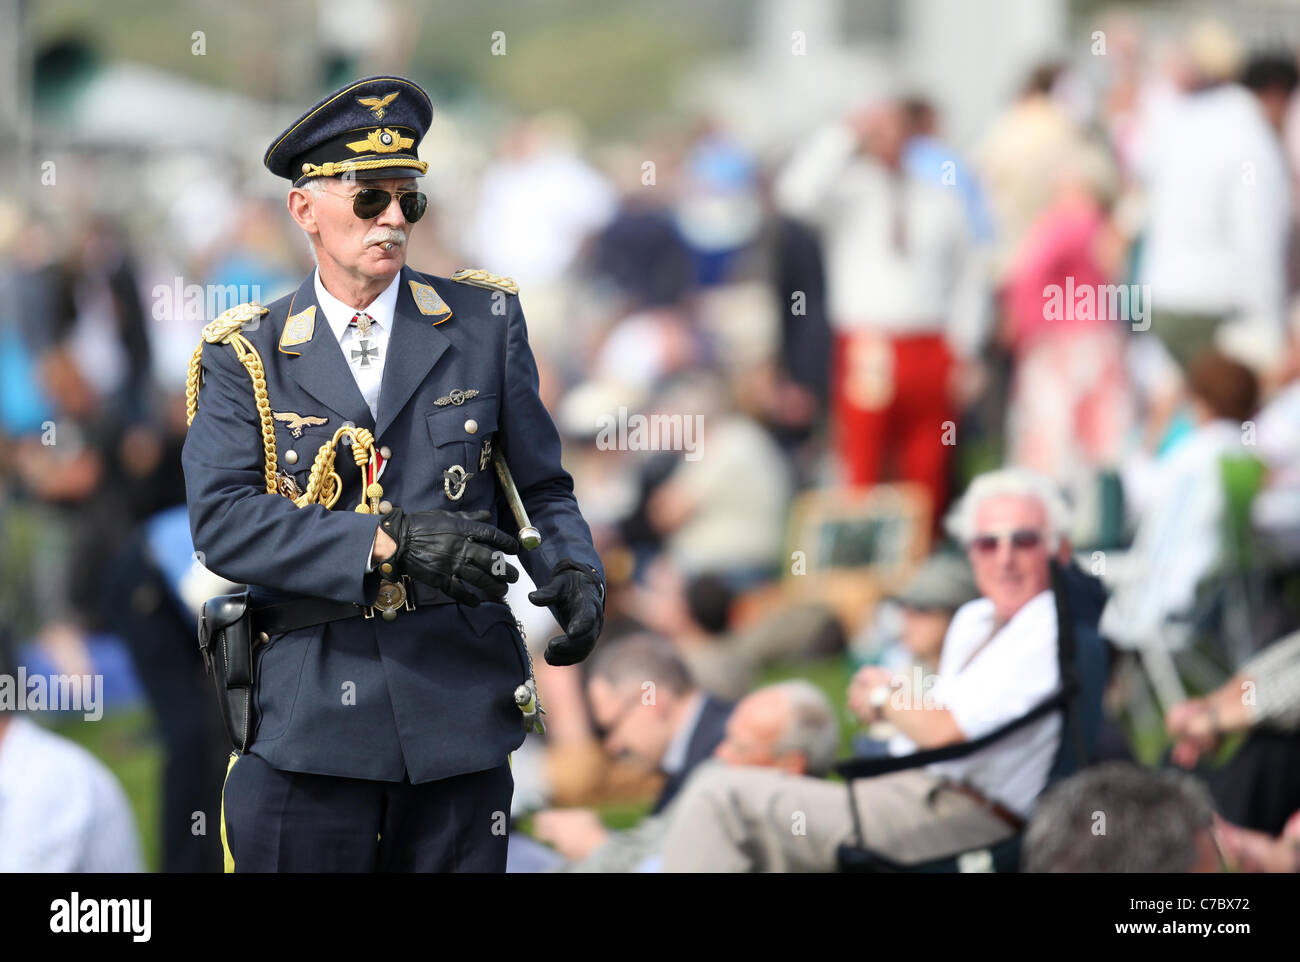 Man dressed in German military uniform at the Goodwood Revival Meeting 2011. Picture by James Boardman. - Stock Image